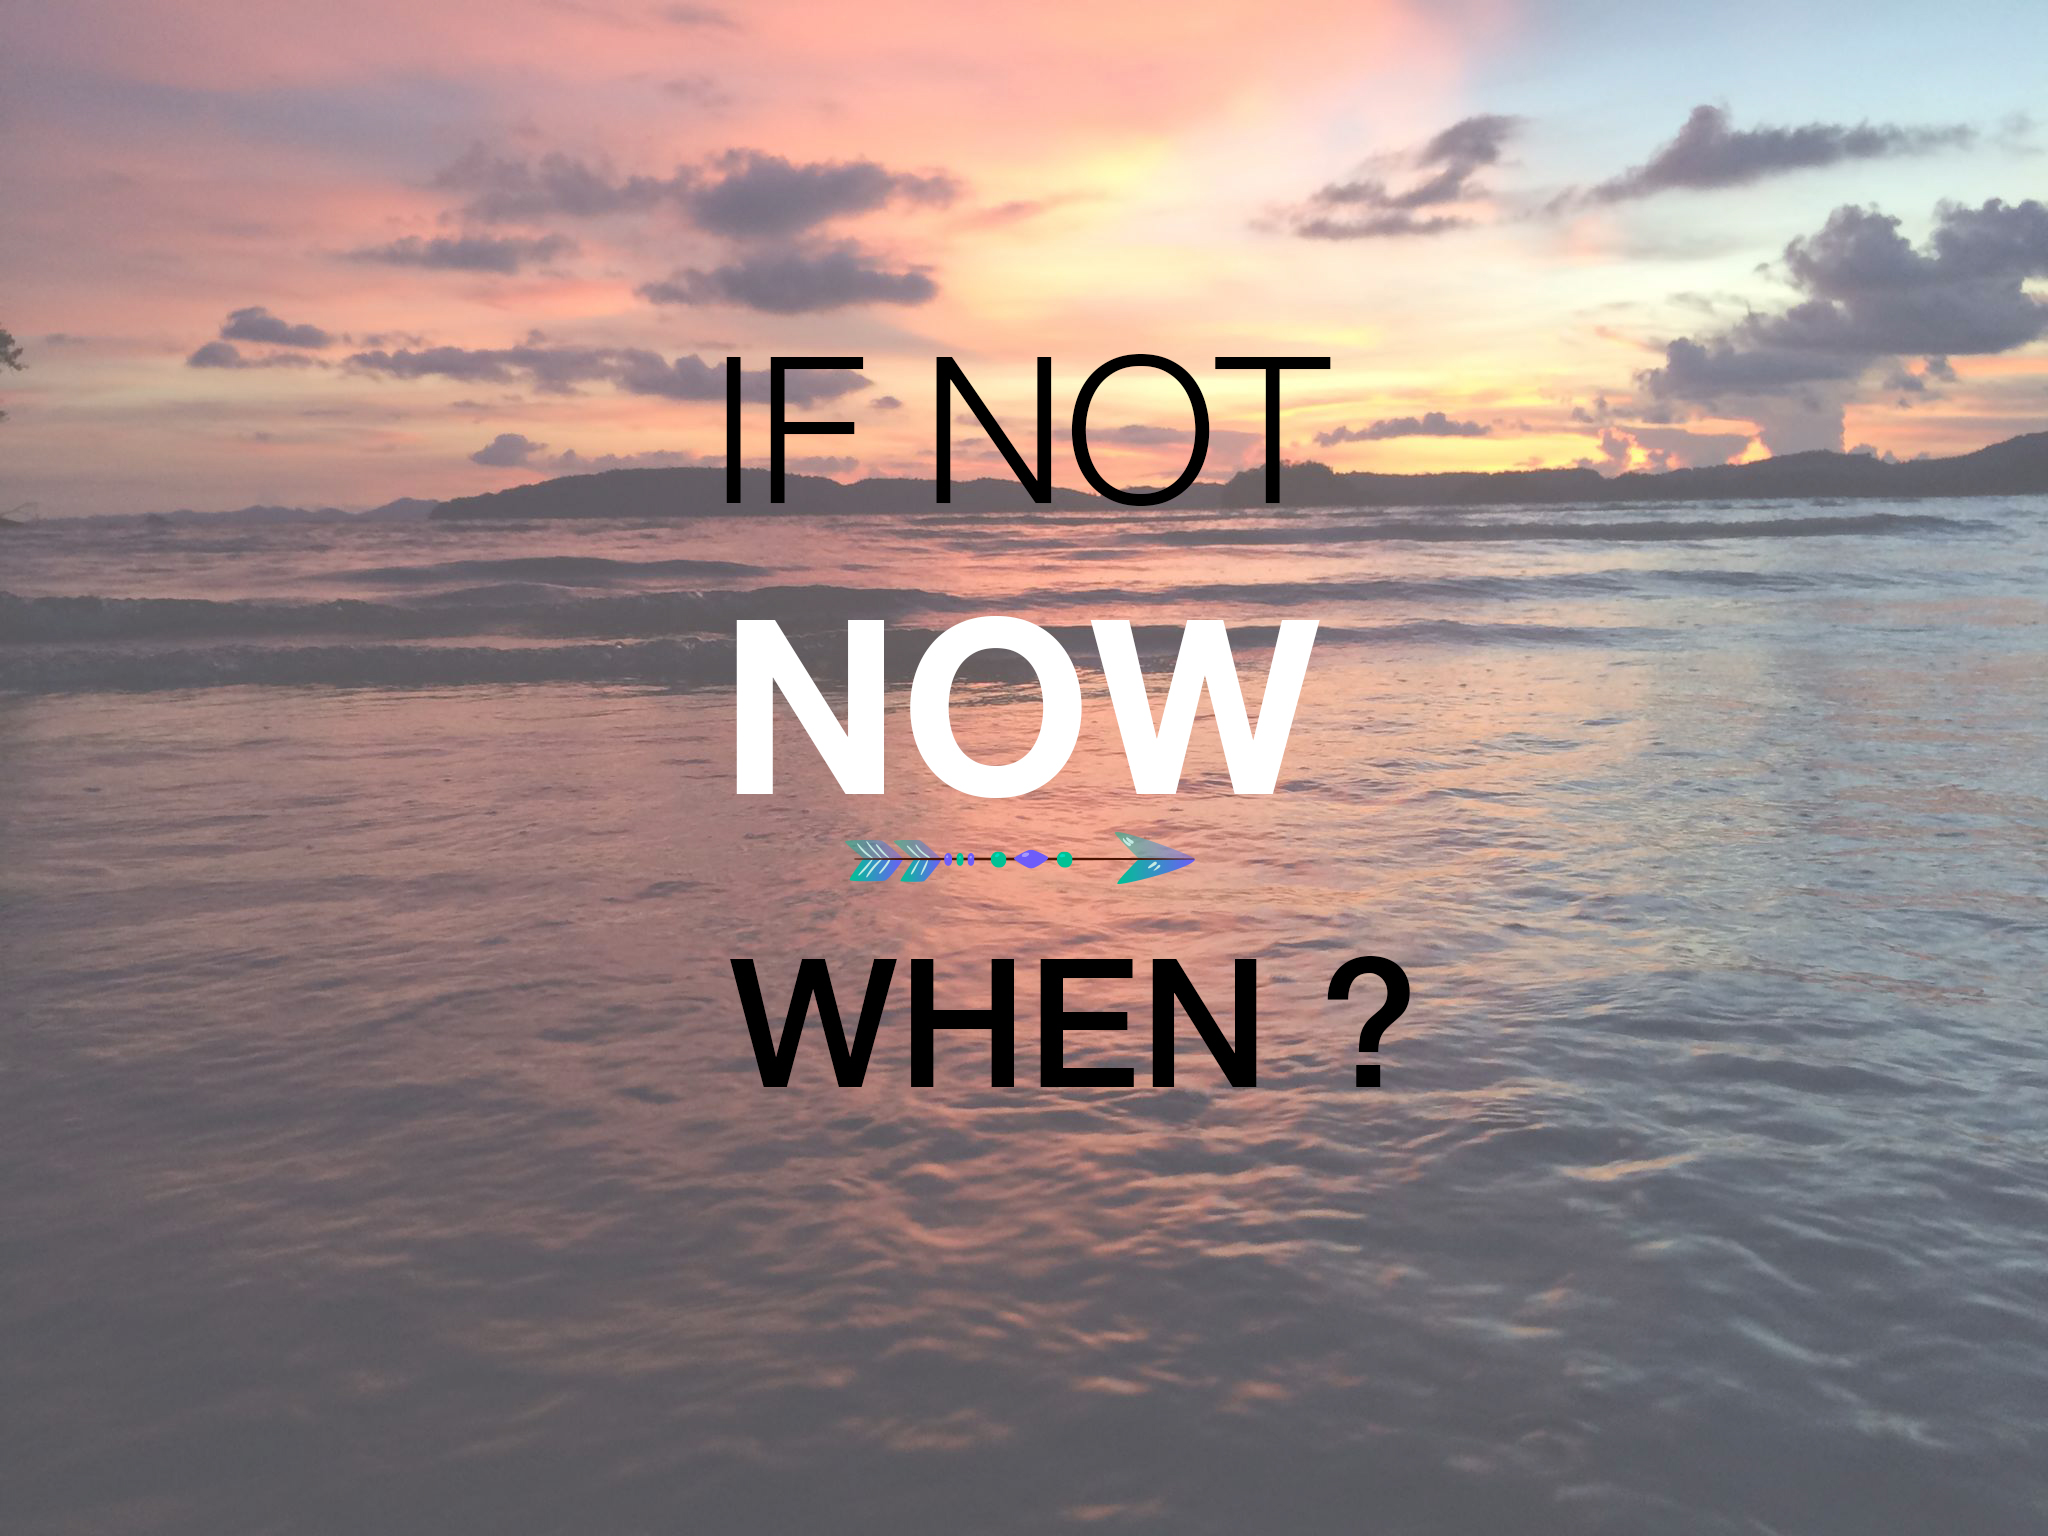 If not now, when ?